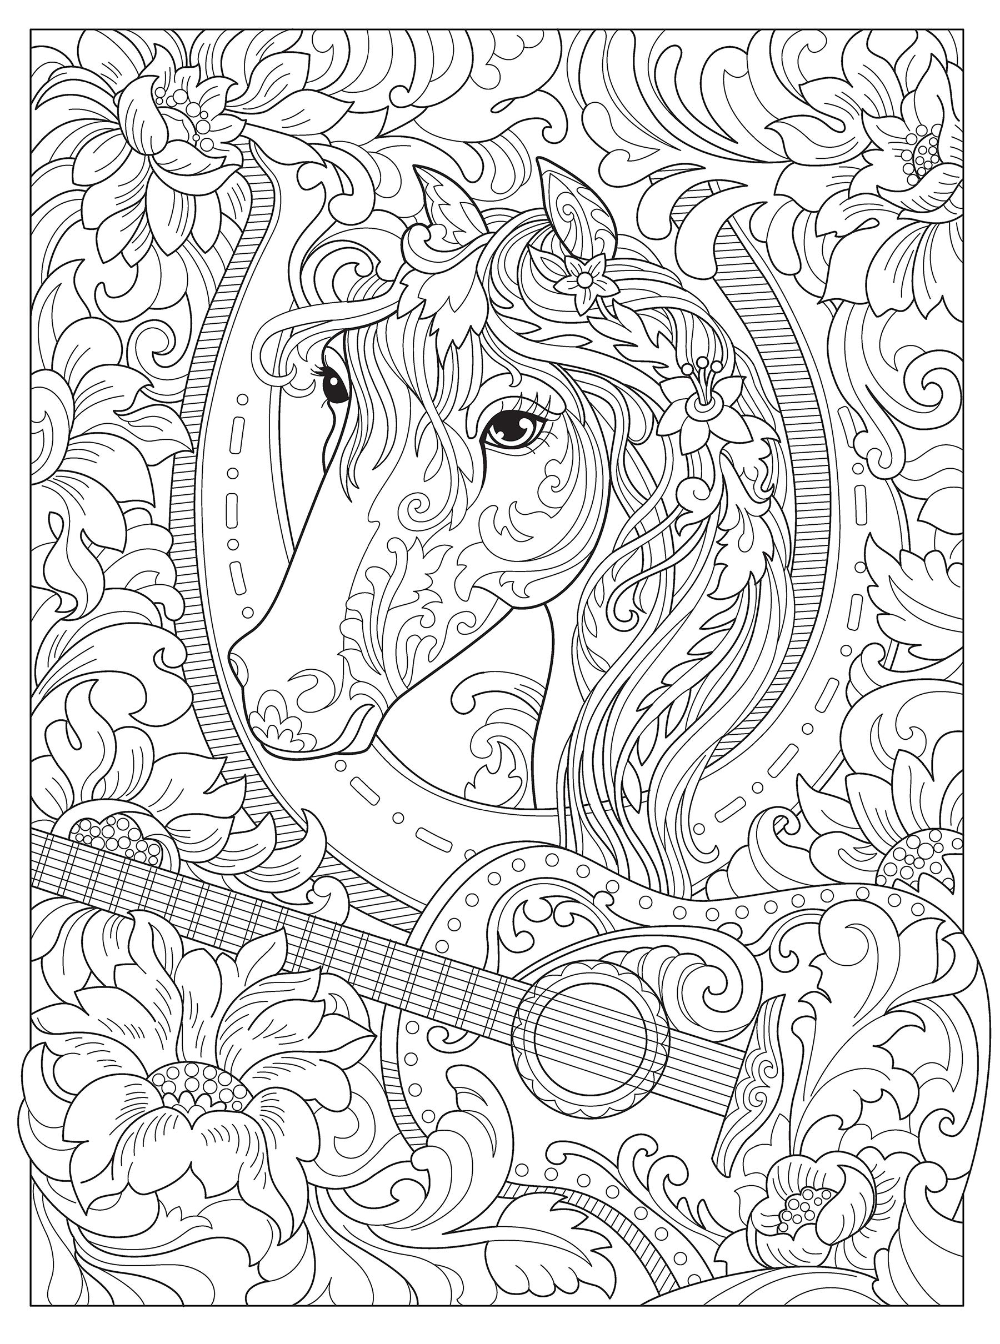 Amazon Com Creative Haven Dream Horses Coloring Book Creative Haven Coloring Books 9780486828558 Horse Coloring Books Coloring Books Animal Coloring Pages